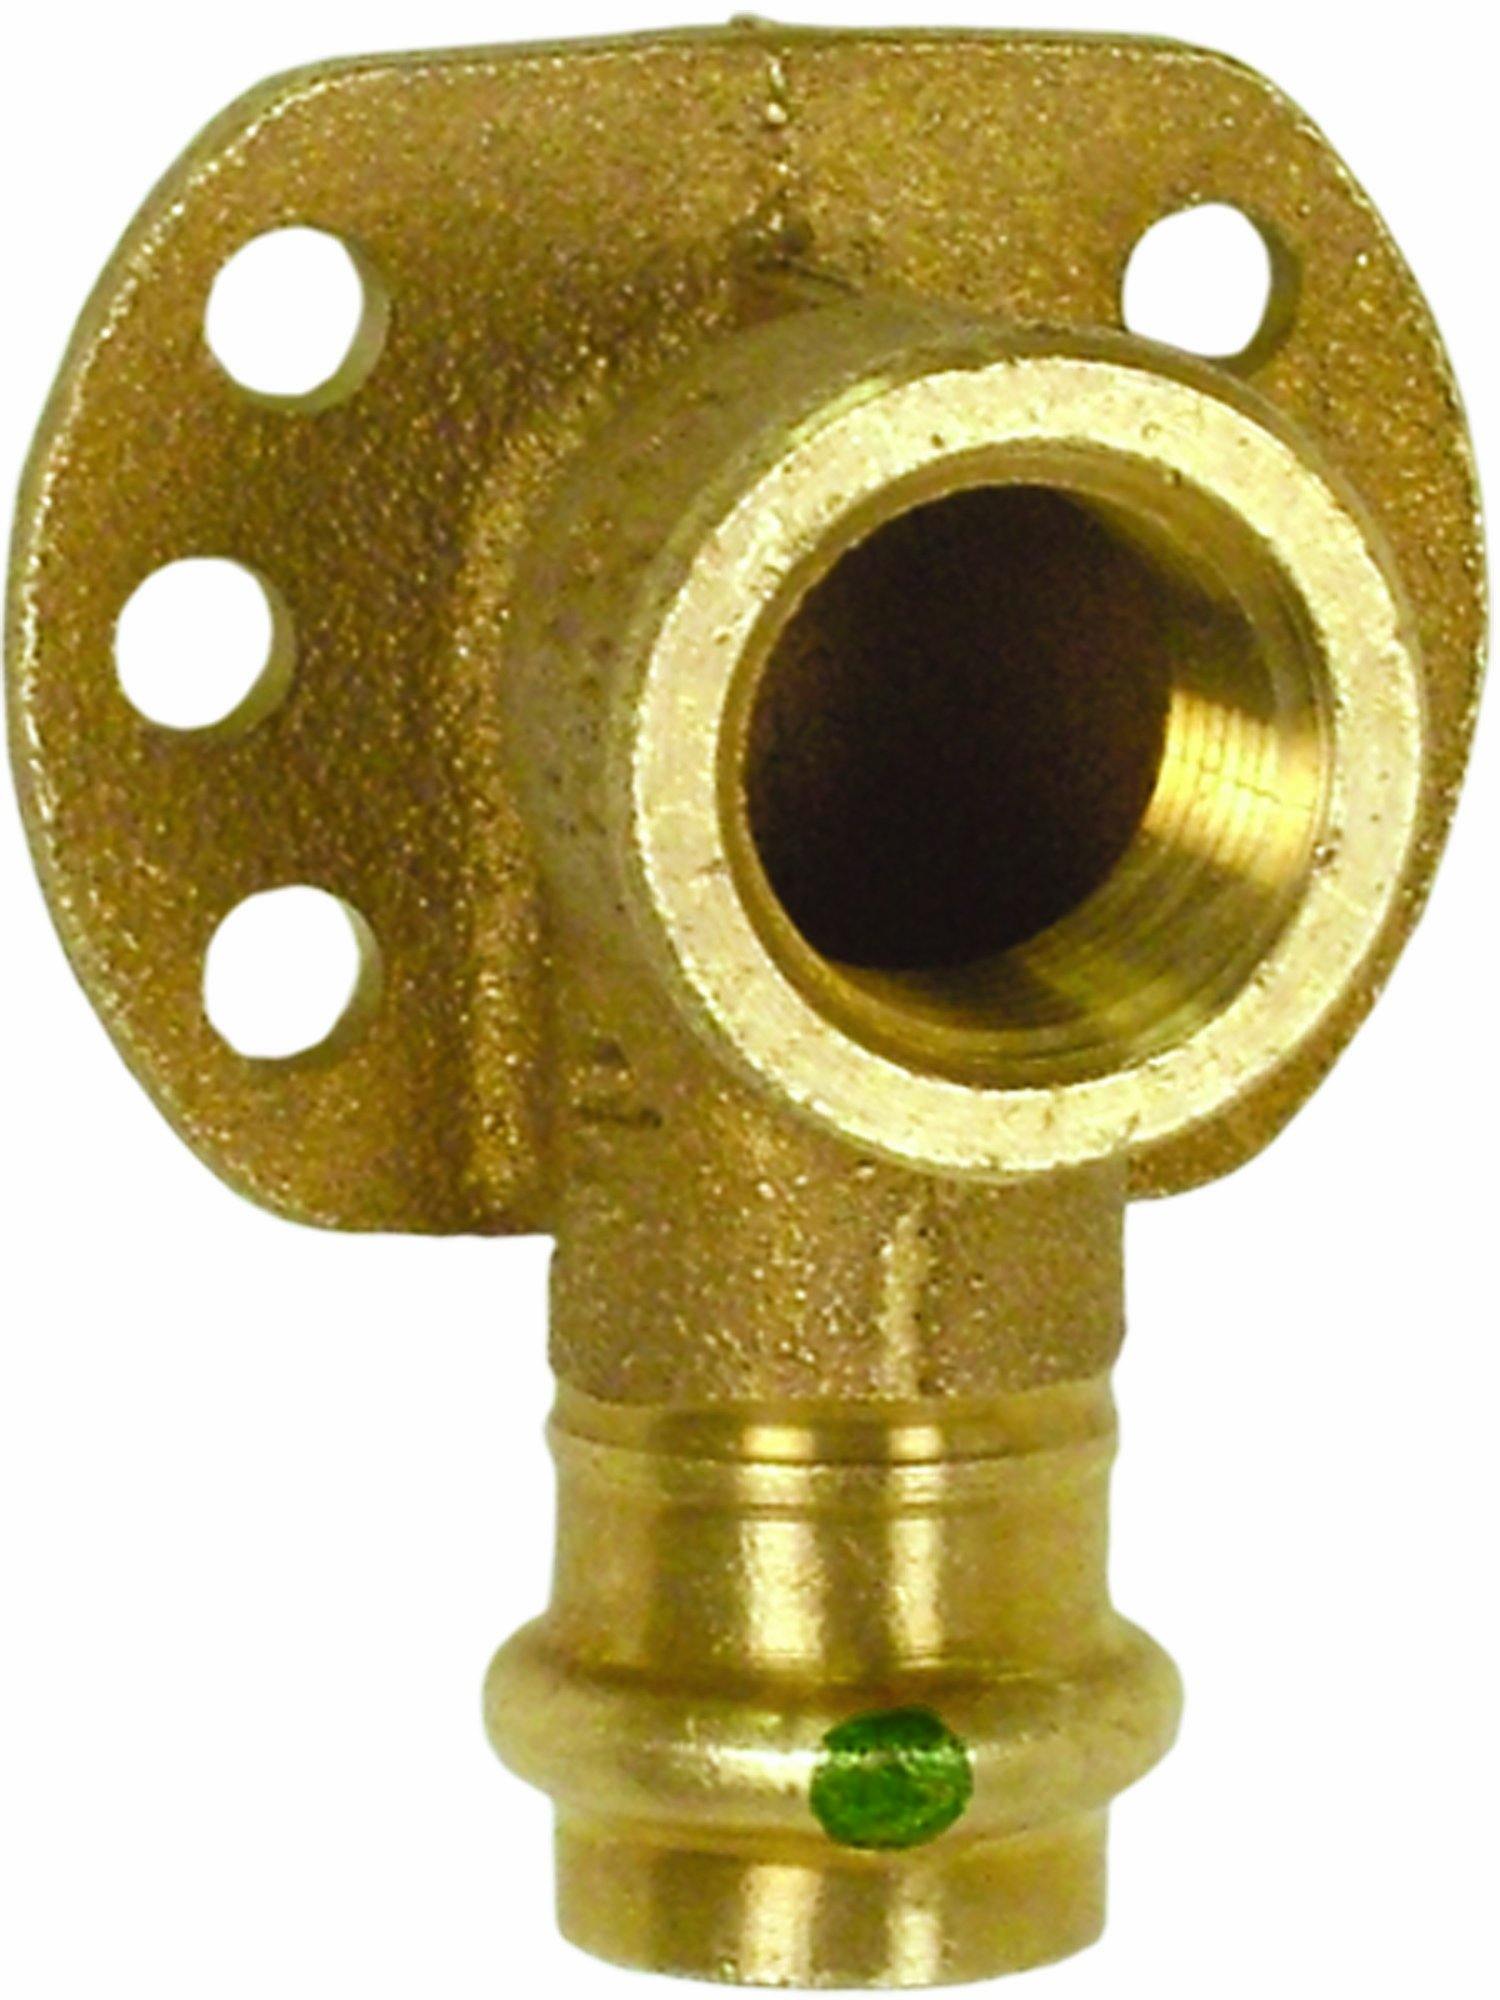 Viega 77697 ProPress Bronze 90-Degree Elbow Drop 90-Degree with Wall Plate with Female 1/2-Inch by 1/2-Inch P x Female NPT